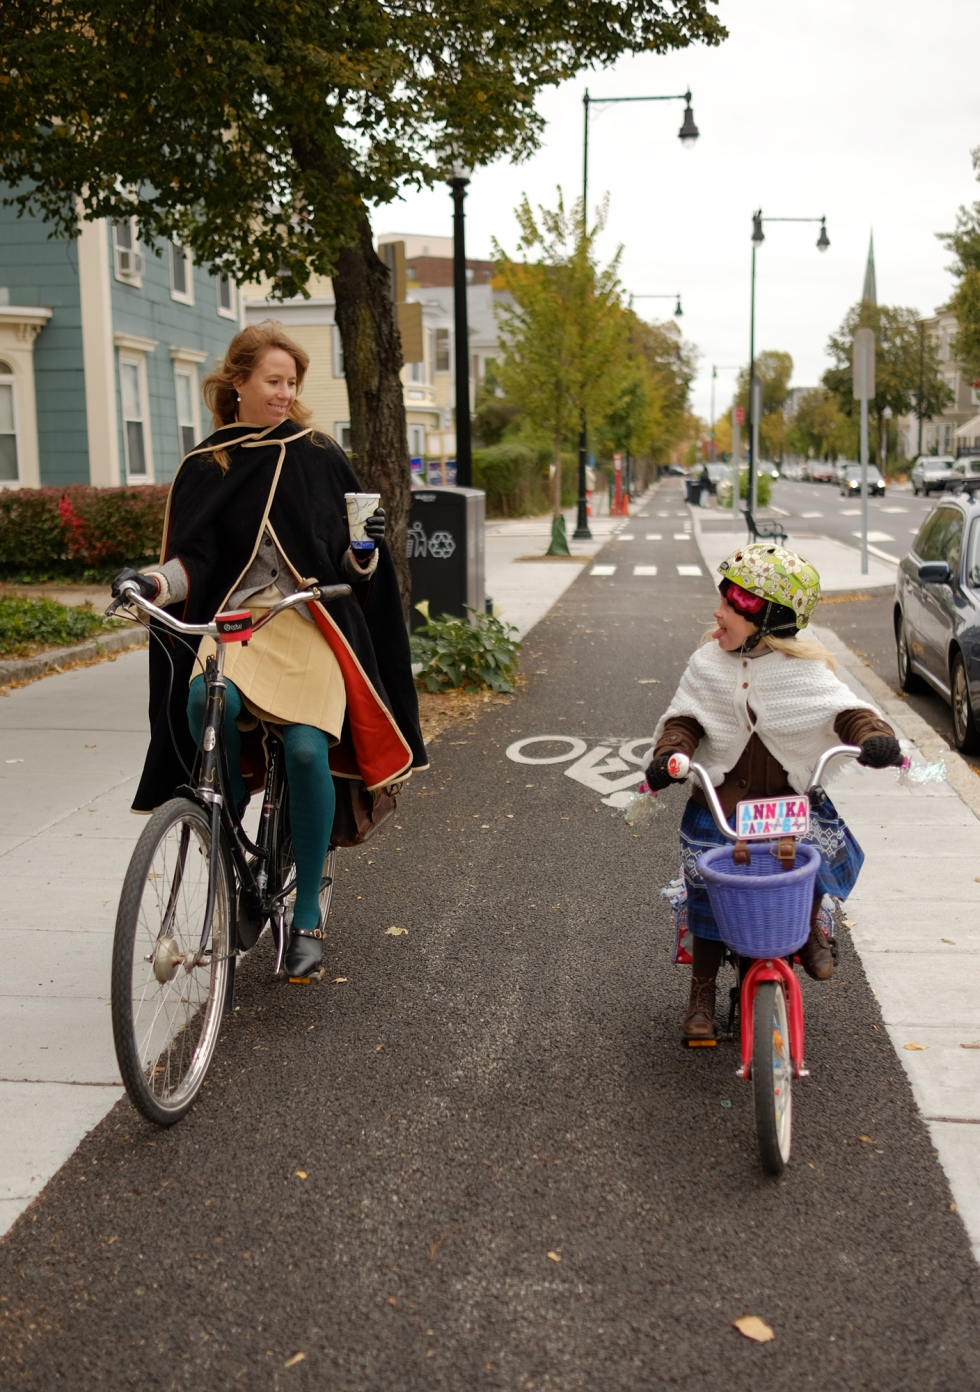 Bikabout-Boston-mother-daughter-biking-on-Western-Ave-cycle-track